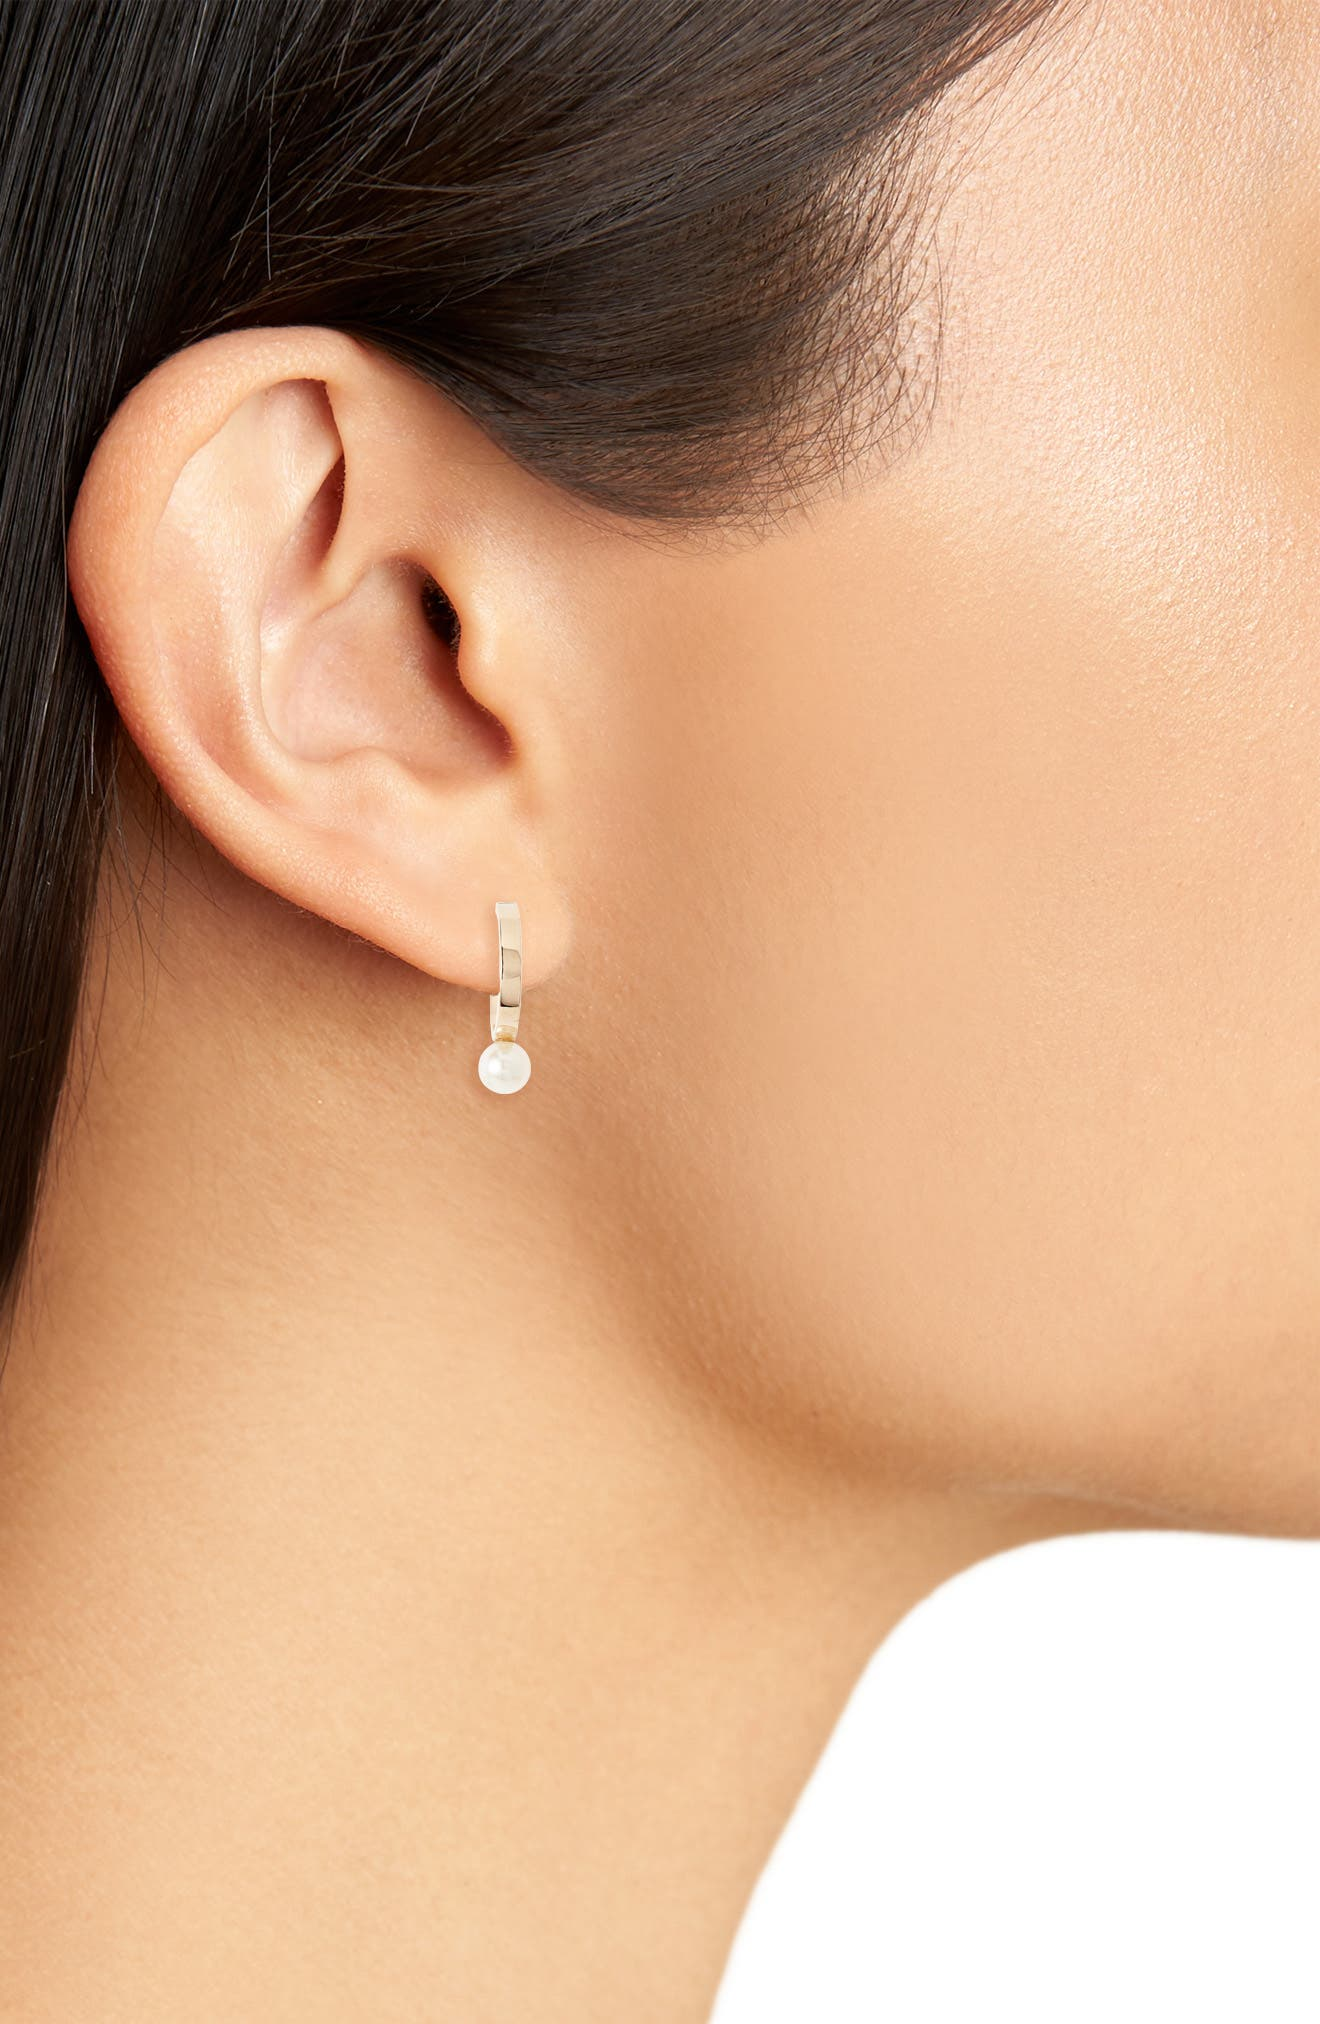 Pearl Station Hoop Earrings,                             Alternate thumbnail 2, color,                             YELLOW GOLD/ WHITE PEARL